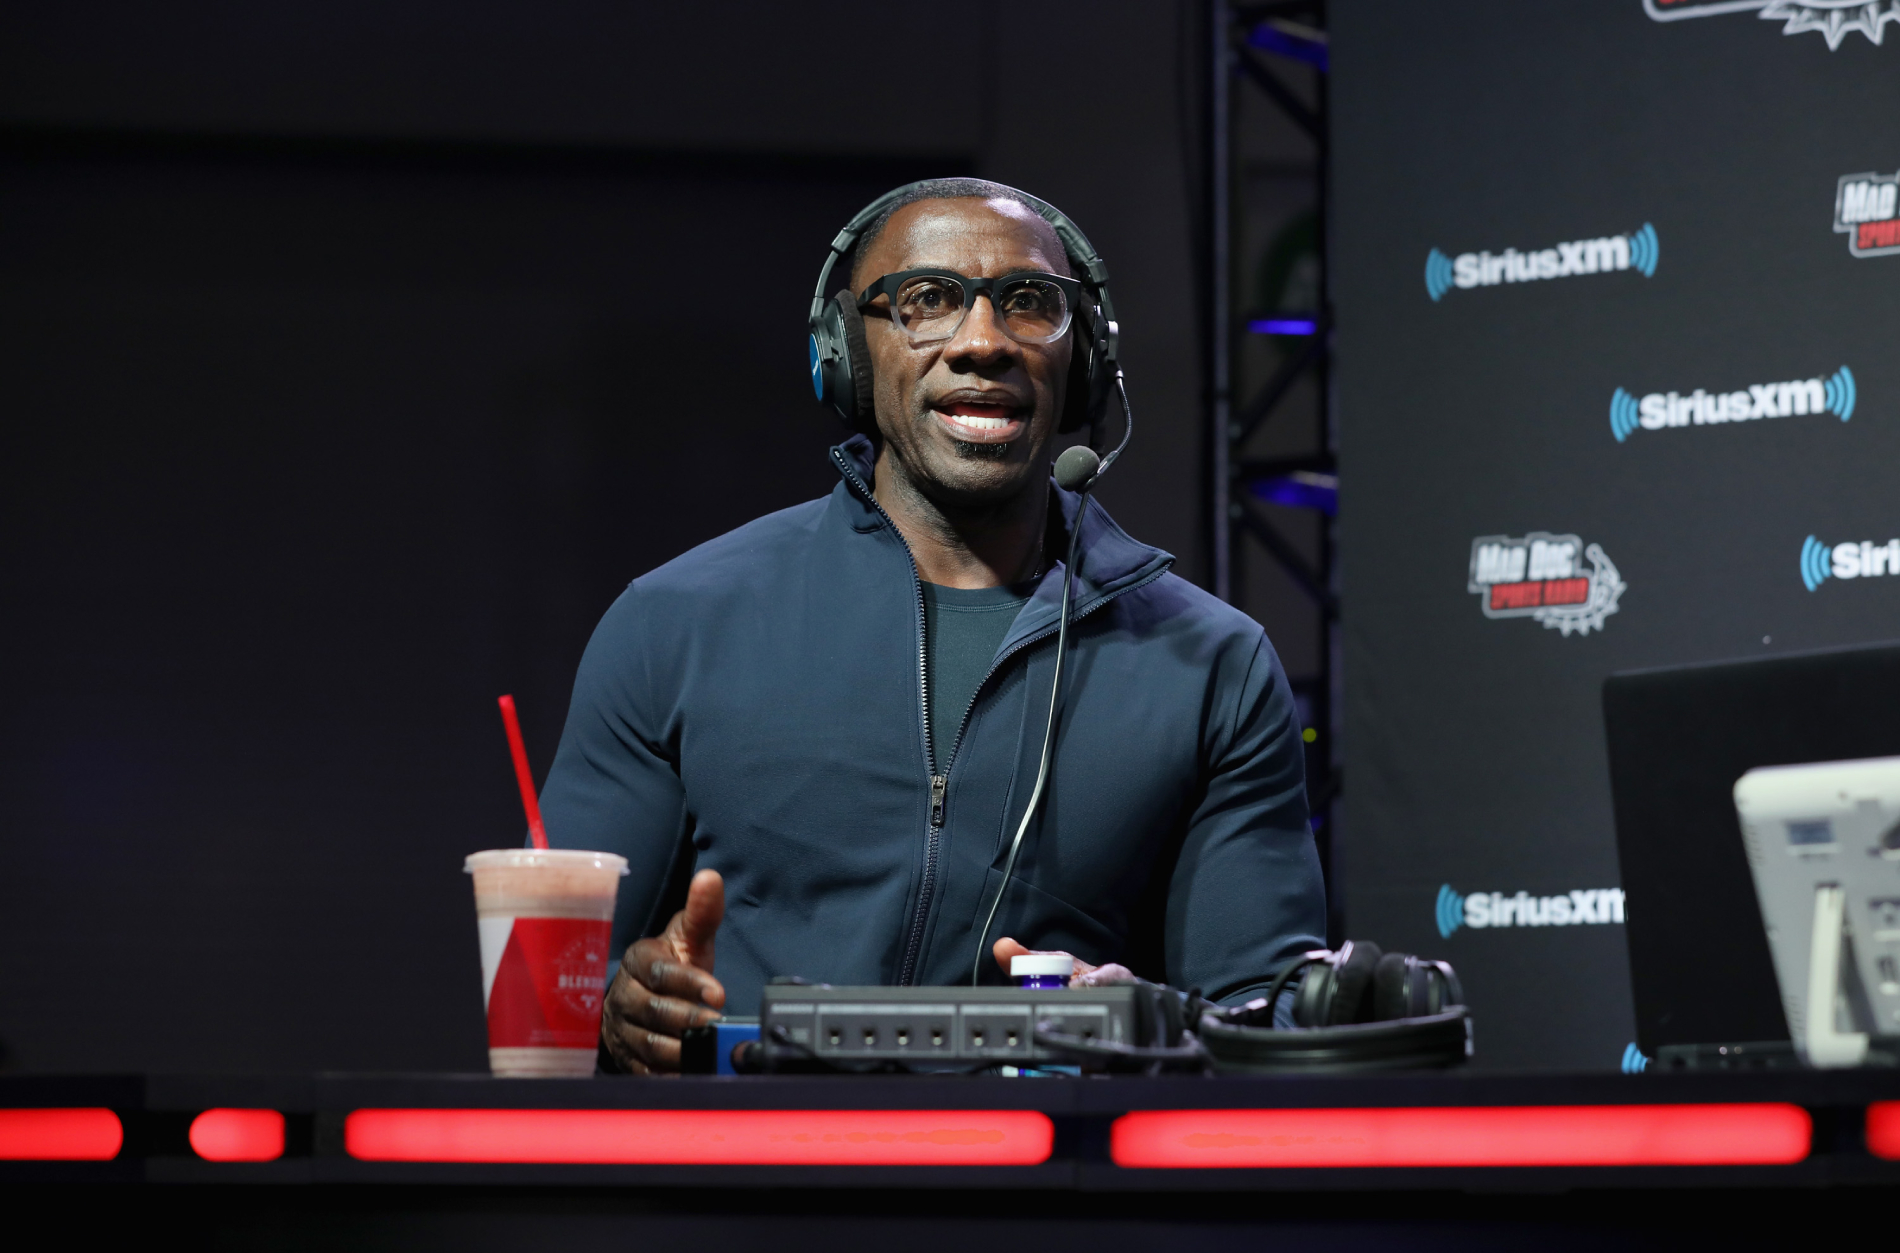 The Presidential Election has divided a lot of people. This includes two former NFL players, Shannon Sharpe and Herschel Walker.